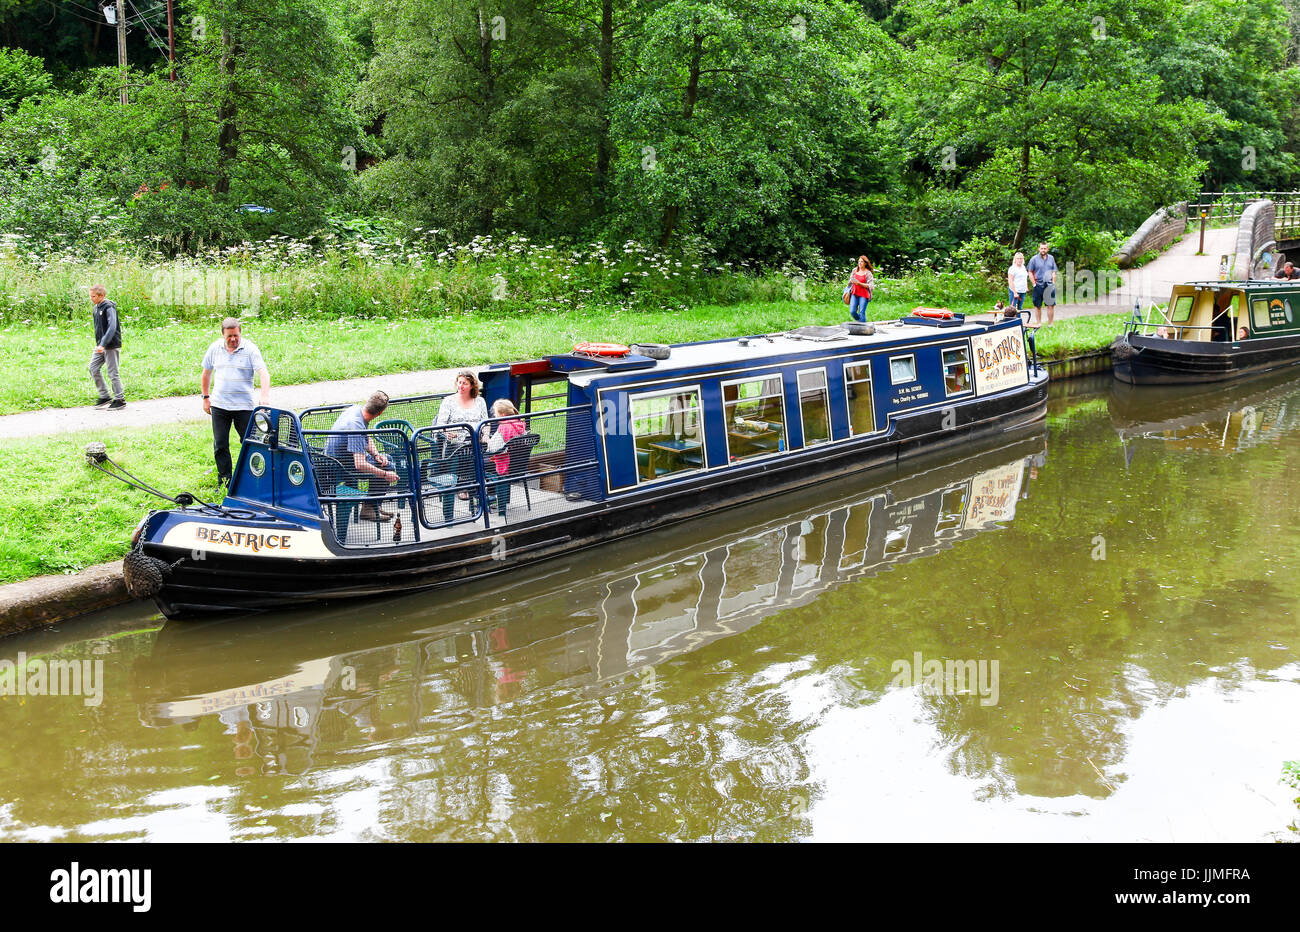 The Beatrice Charity narrowboat or barge or canal boat on the Caldon Canal at Consall  North Staffordshire England - Stock Image